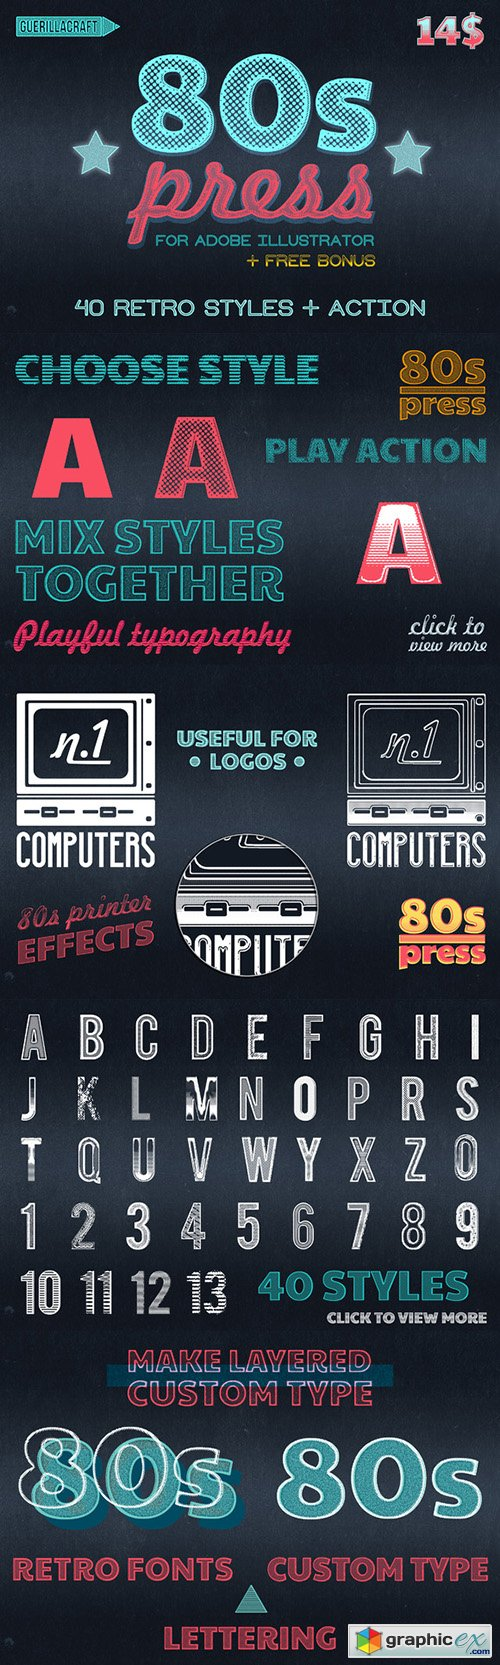 80s PRESS for Adobe Illustrator